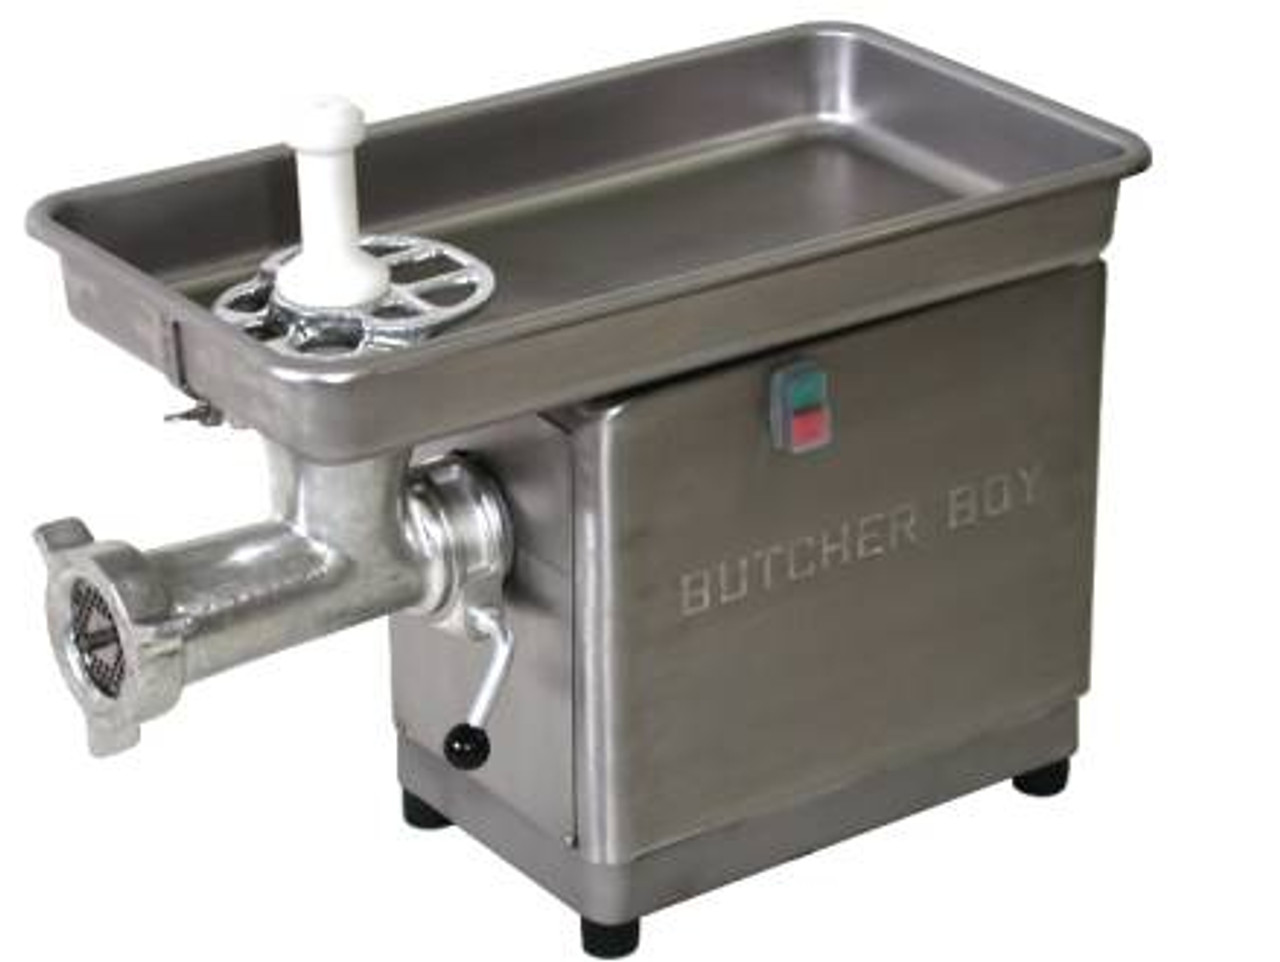 Butcher Boy Model TCA-22